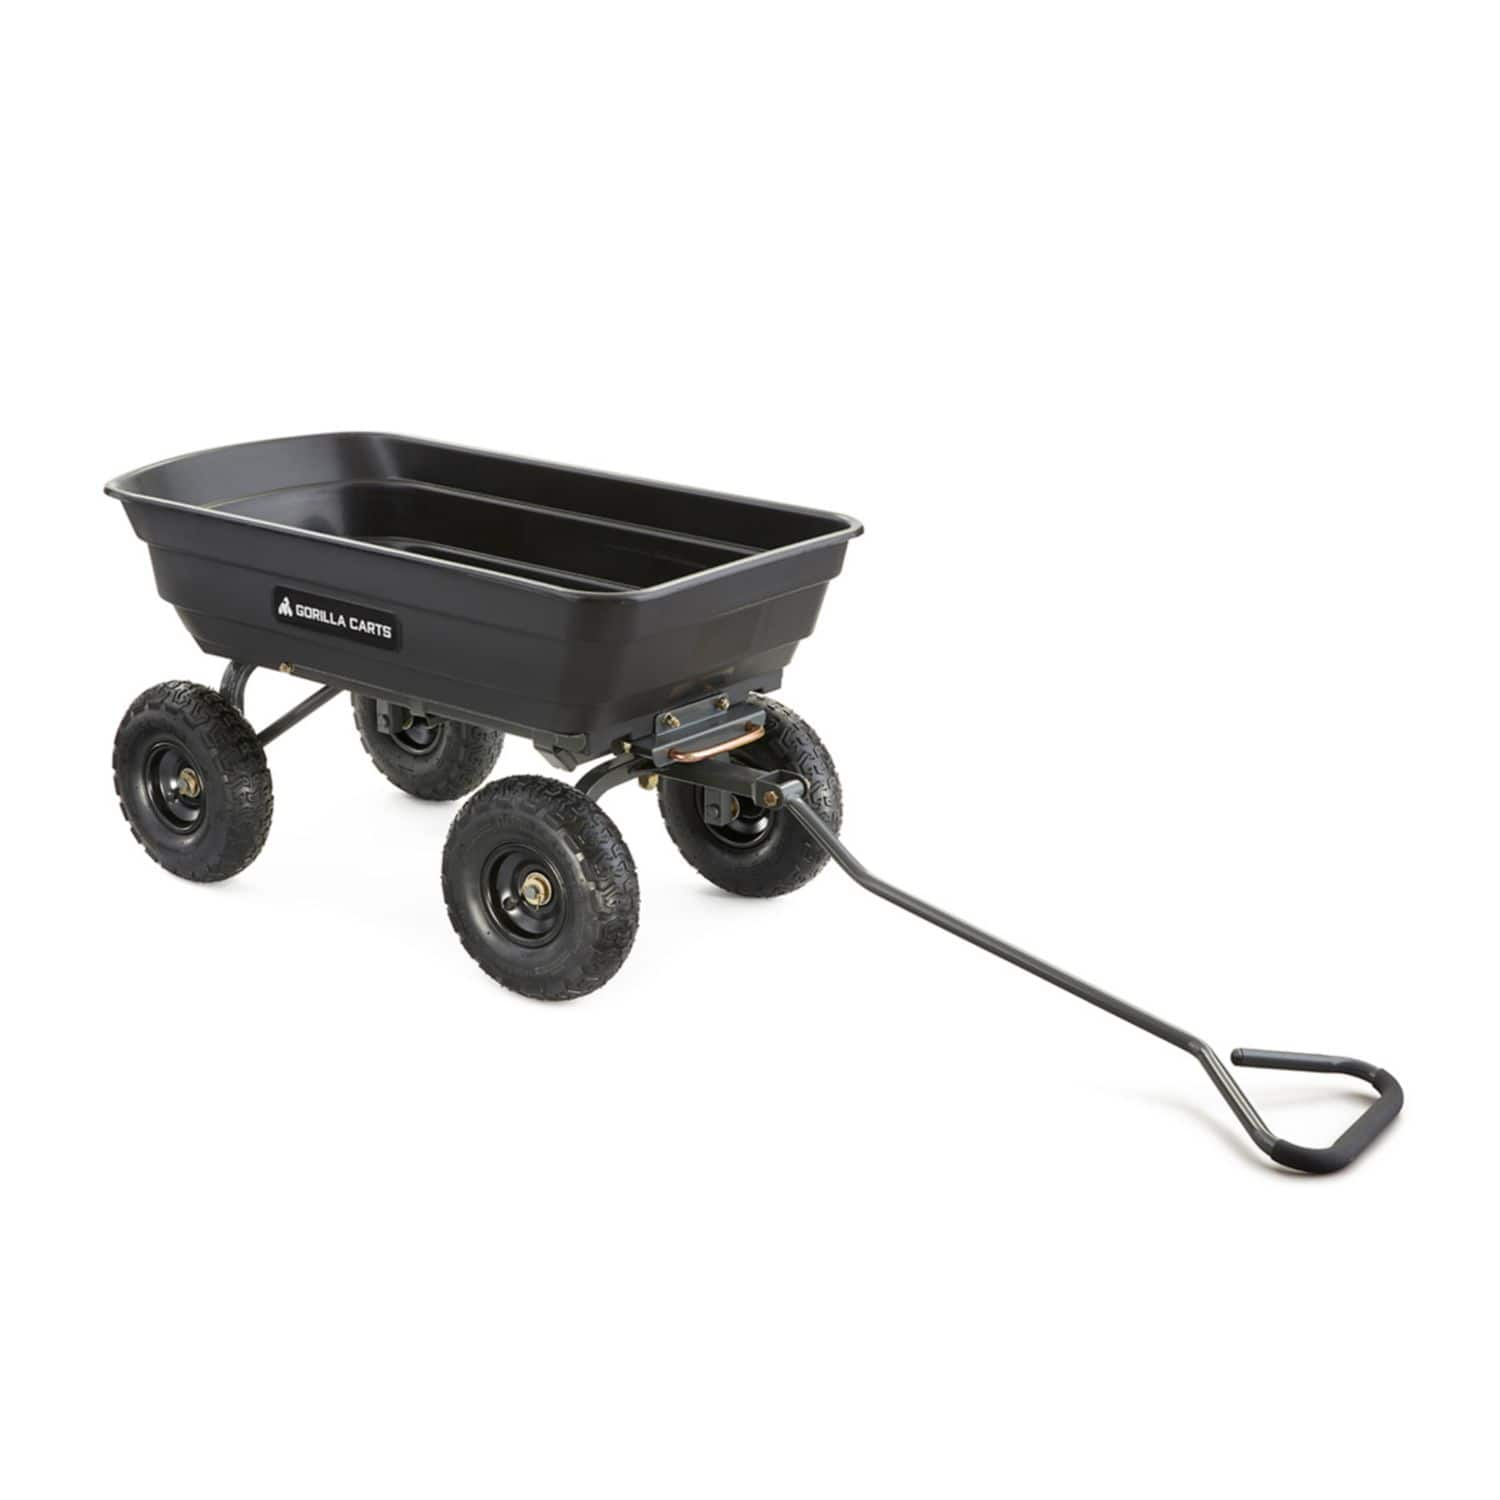 Gorilla Carts GOR4PS Poly Garden Dump Cart with Steel Frame and 10-in. Pneumatic Tires, 600-Pound Capacity, Black - $79.99